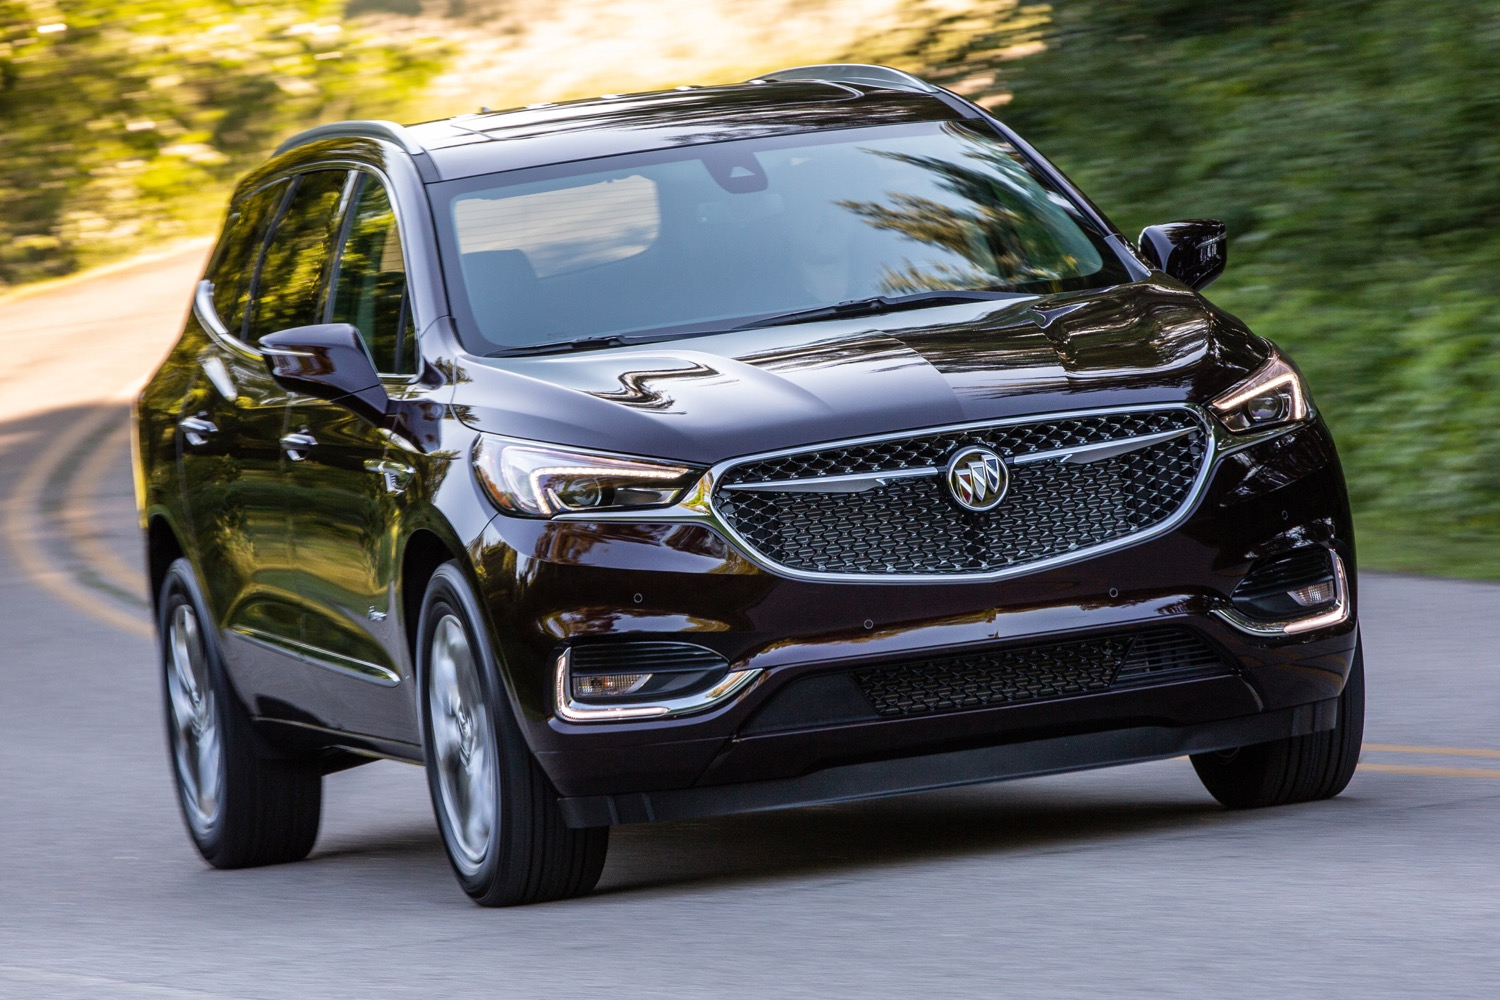 All The Changes Made To The 2020 Buick Enclave | Gm Authority 2022 Buick Enclave Trims, Transmission Problems, Used